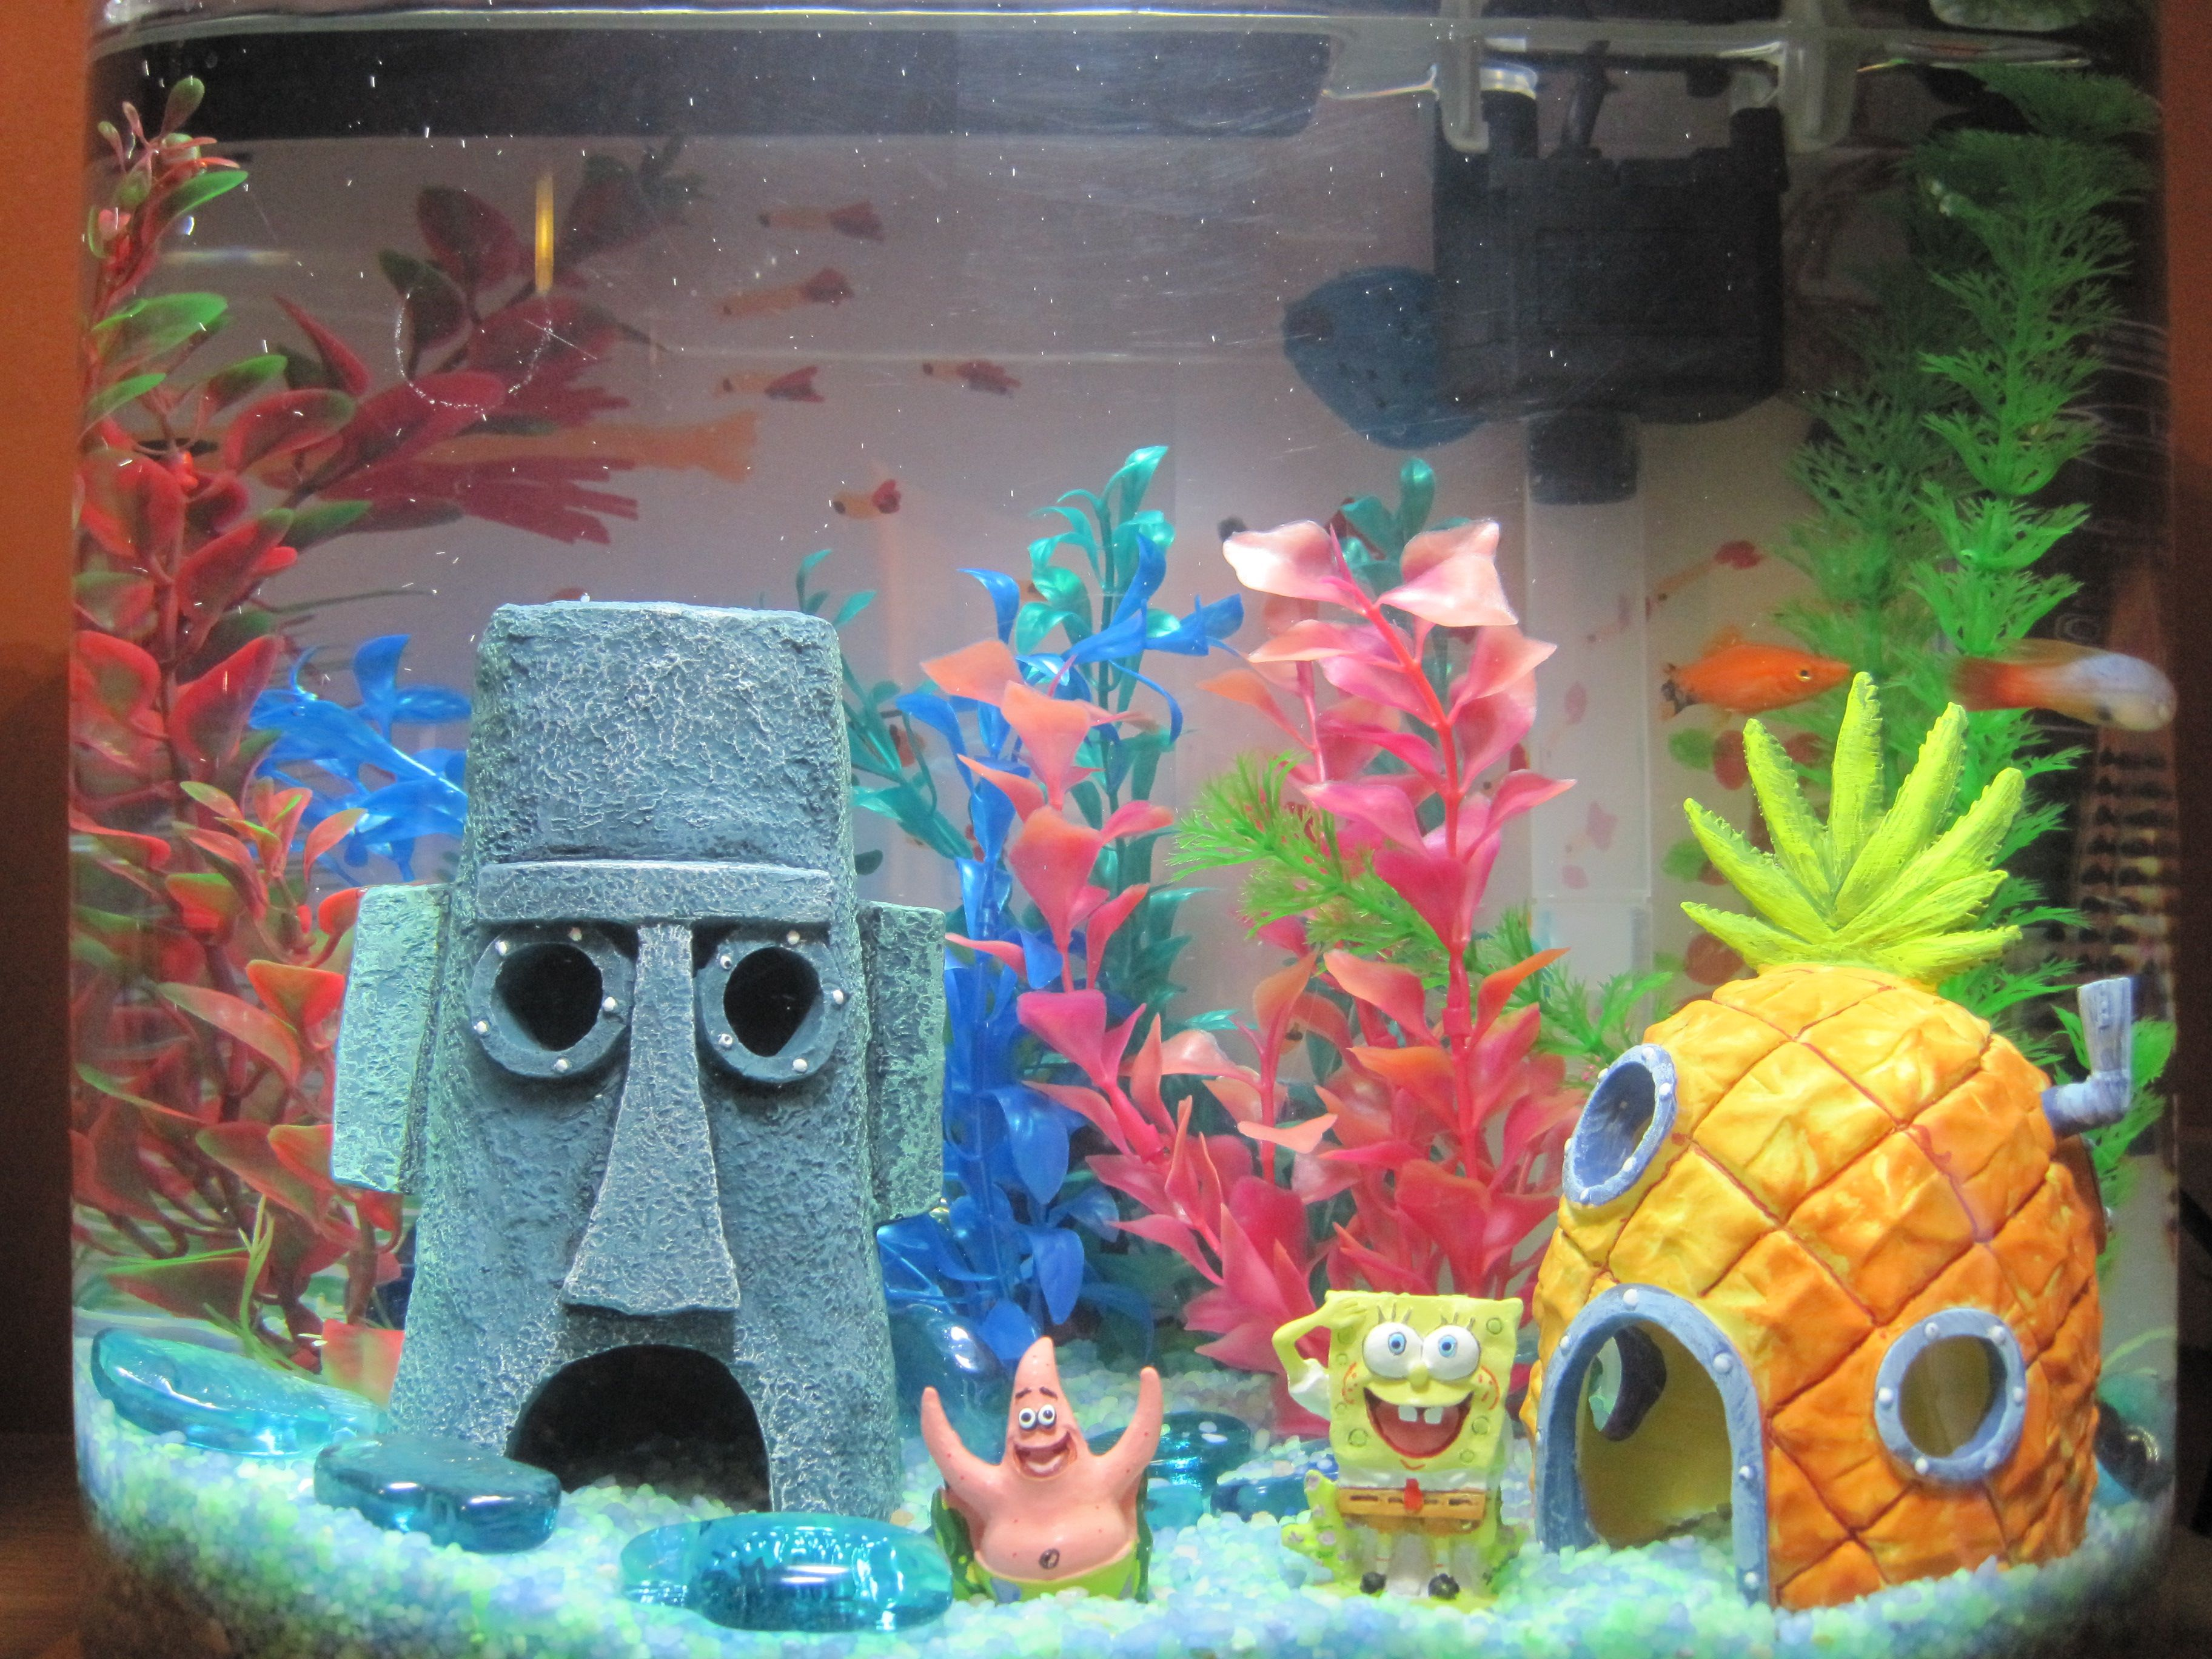 spongebob fish tank my son would love this hmm may have to